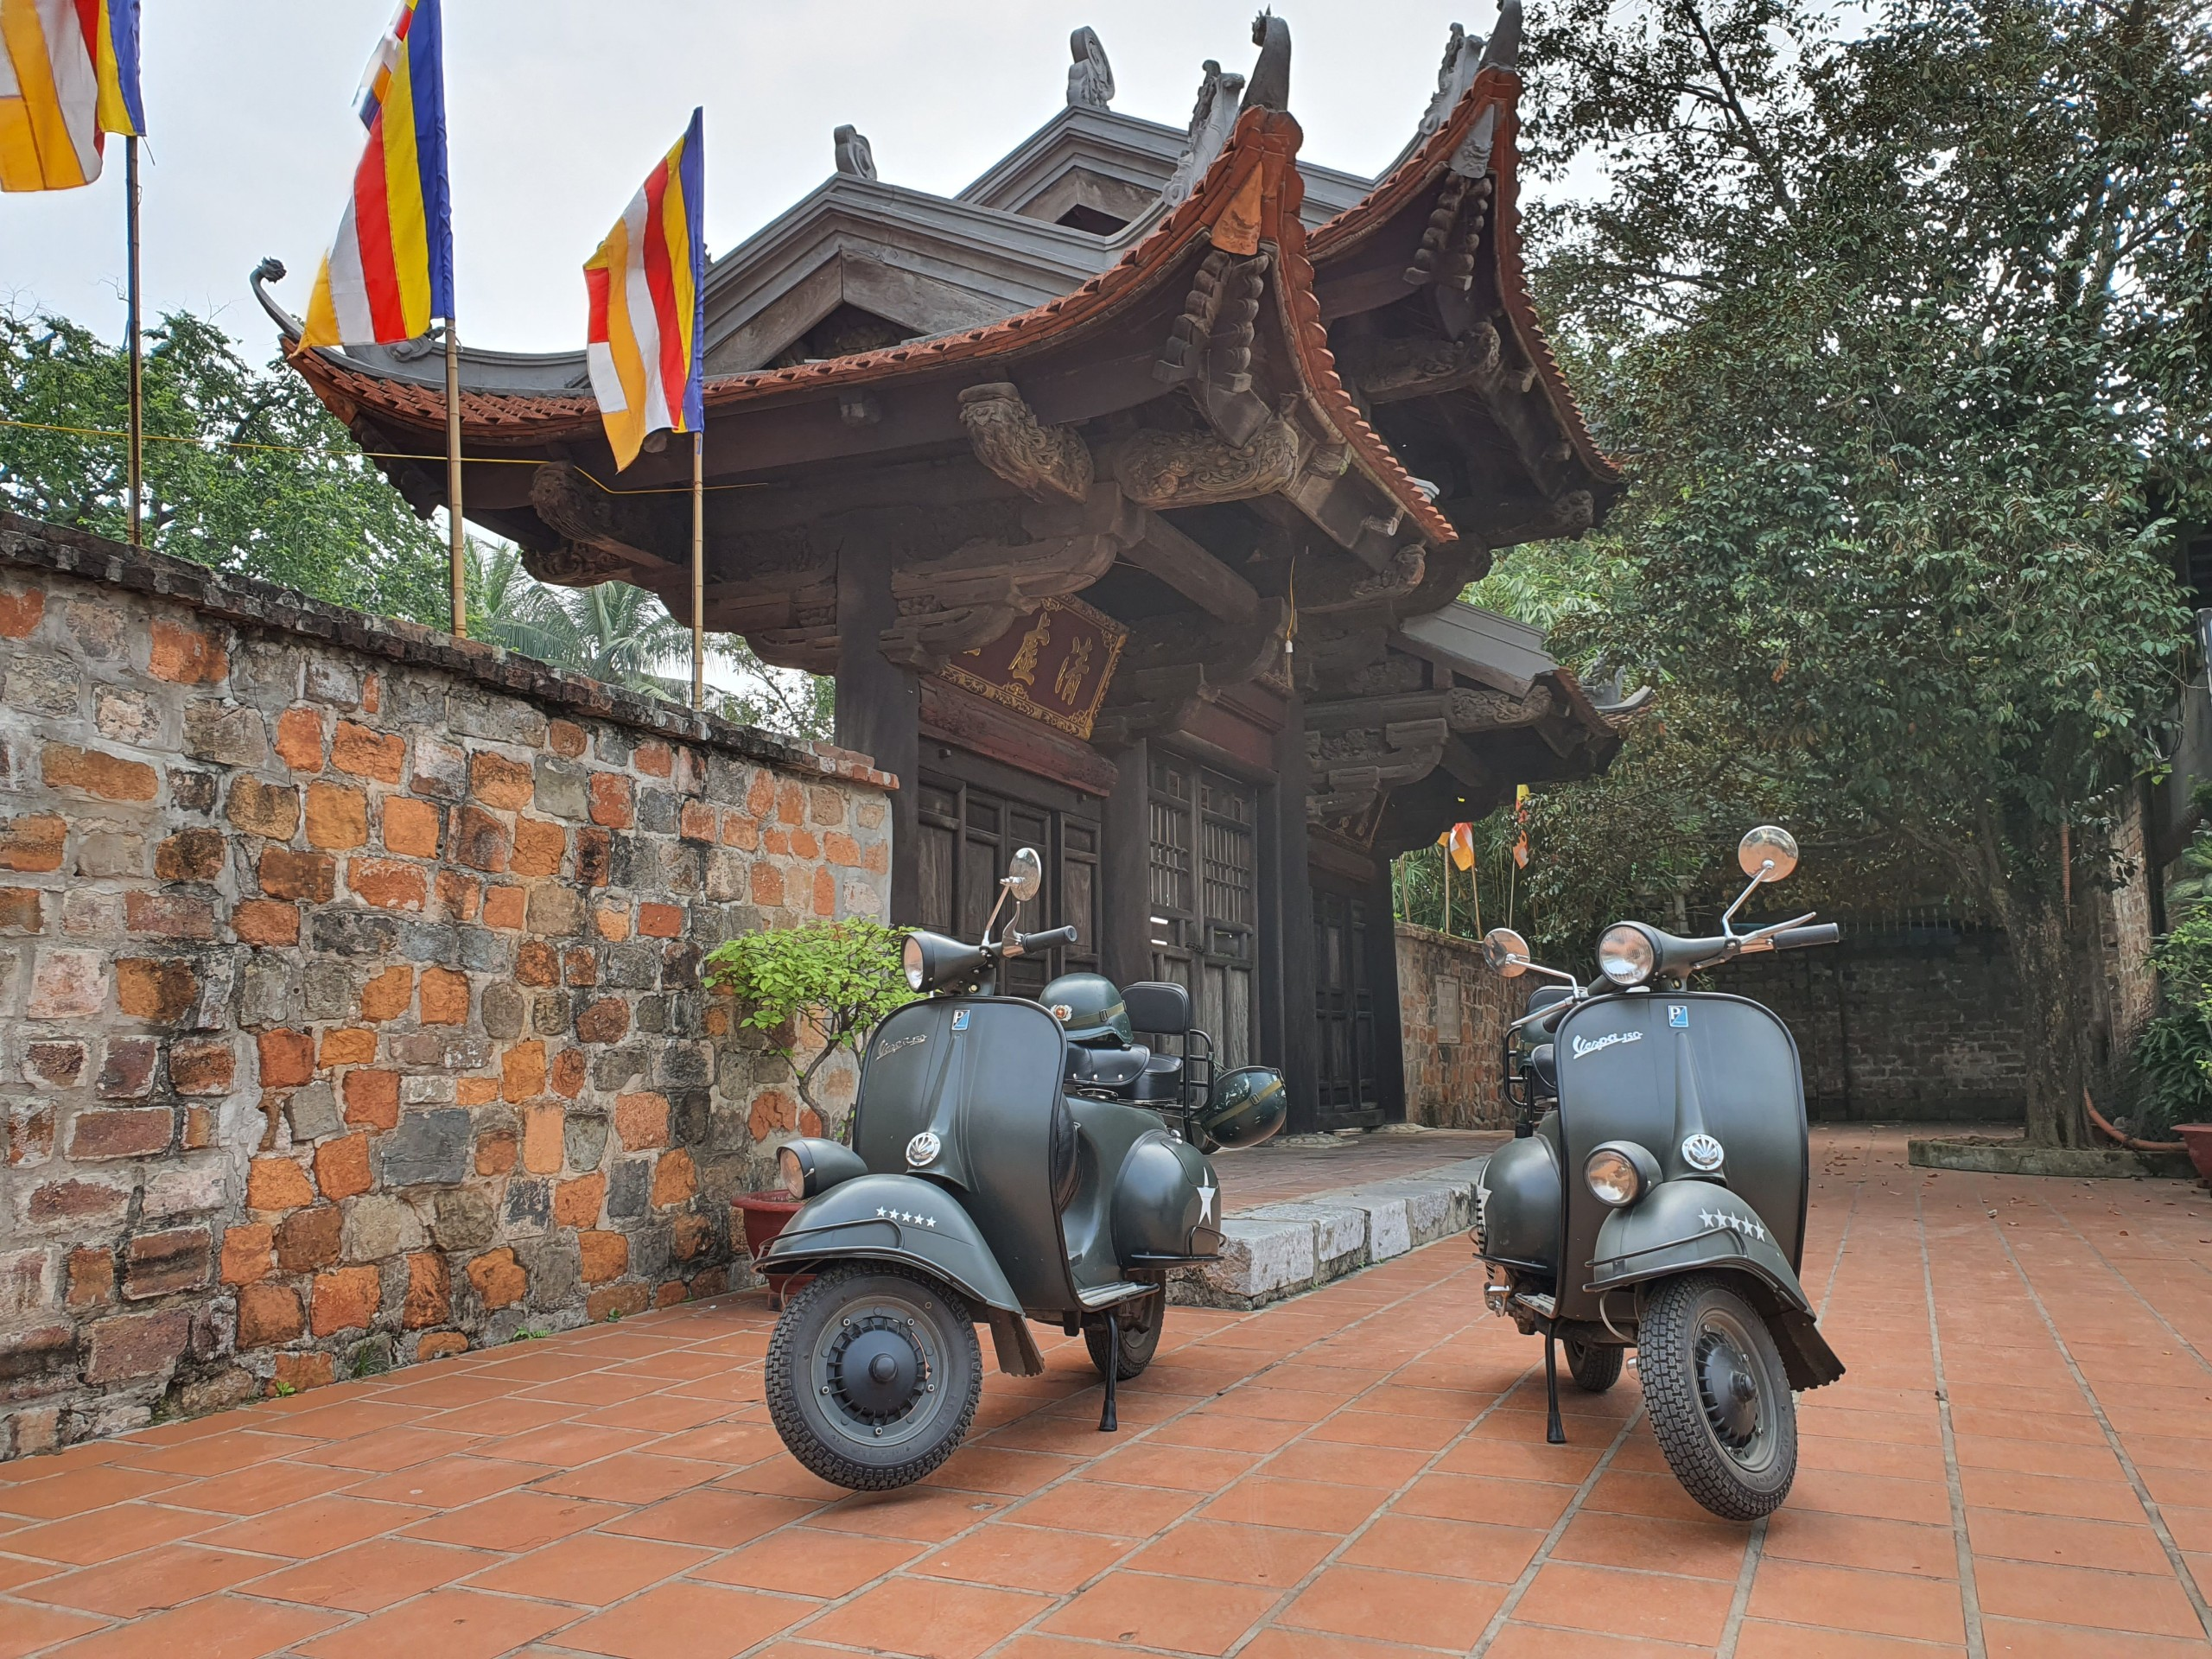 Vespa Tours hanoi- Food & Culture Tours